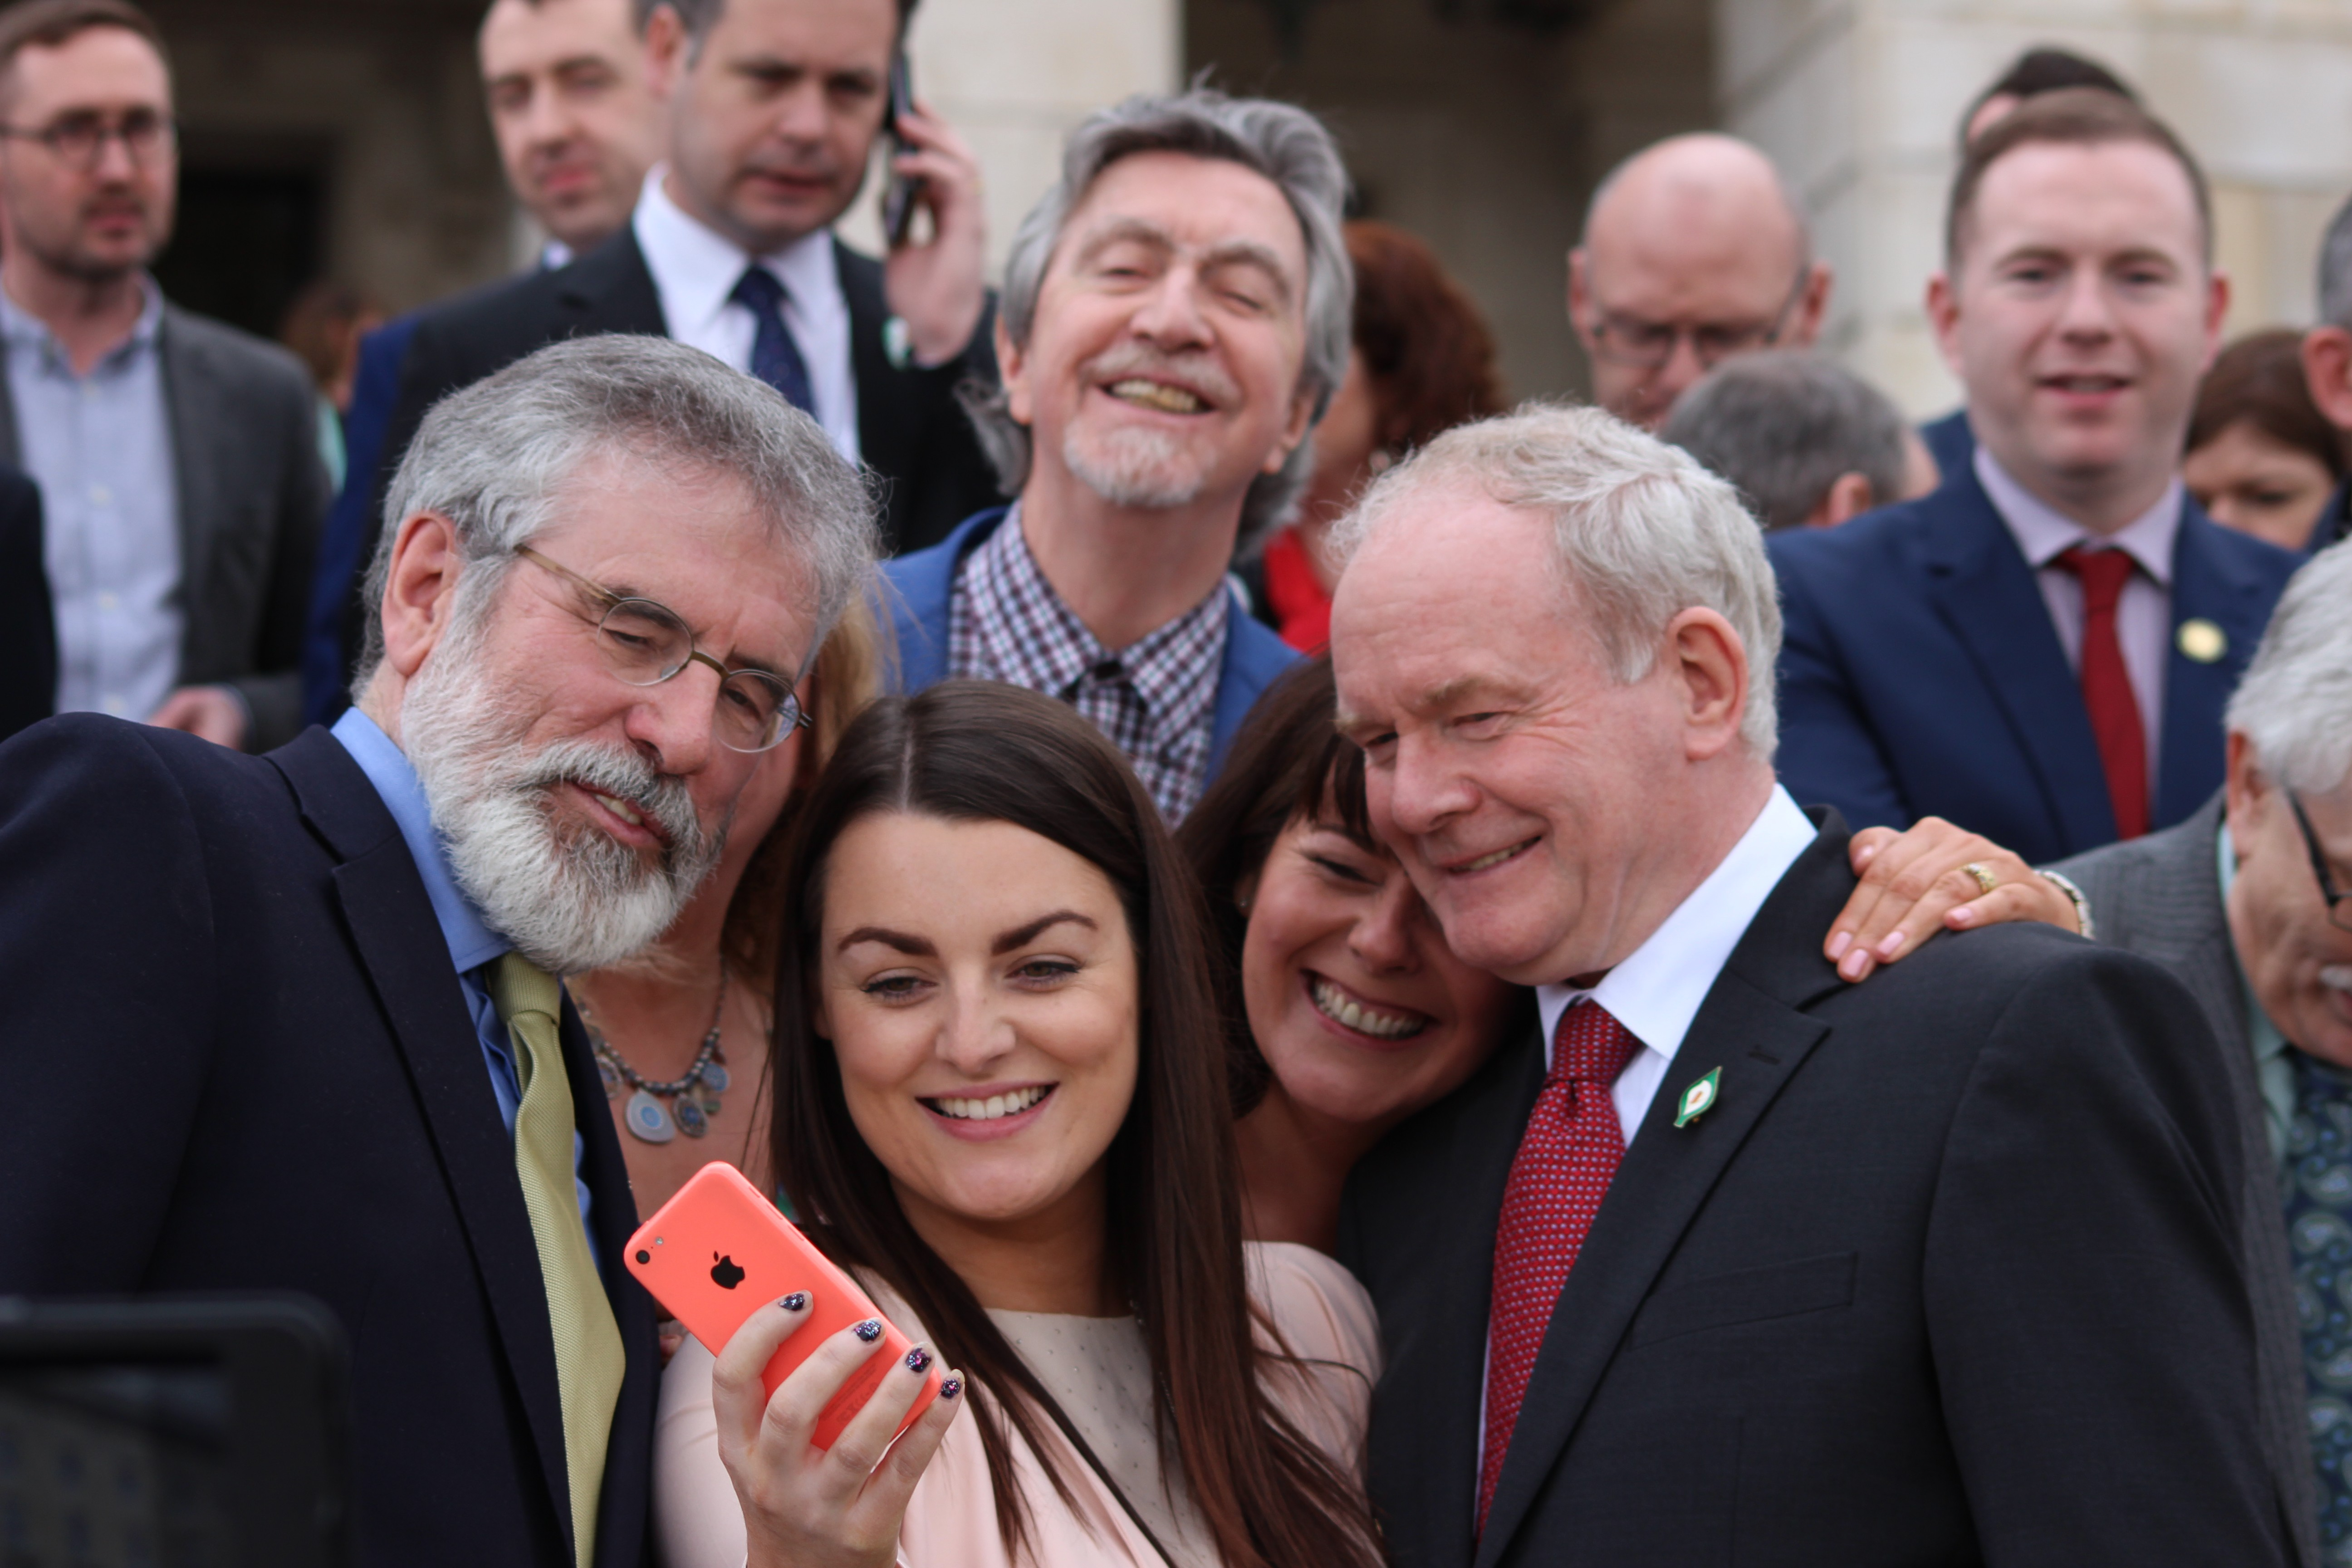 Martin McGuinness poses for a selfie at Stormont.